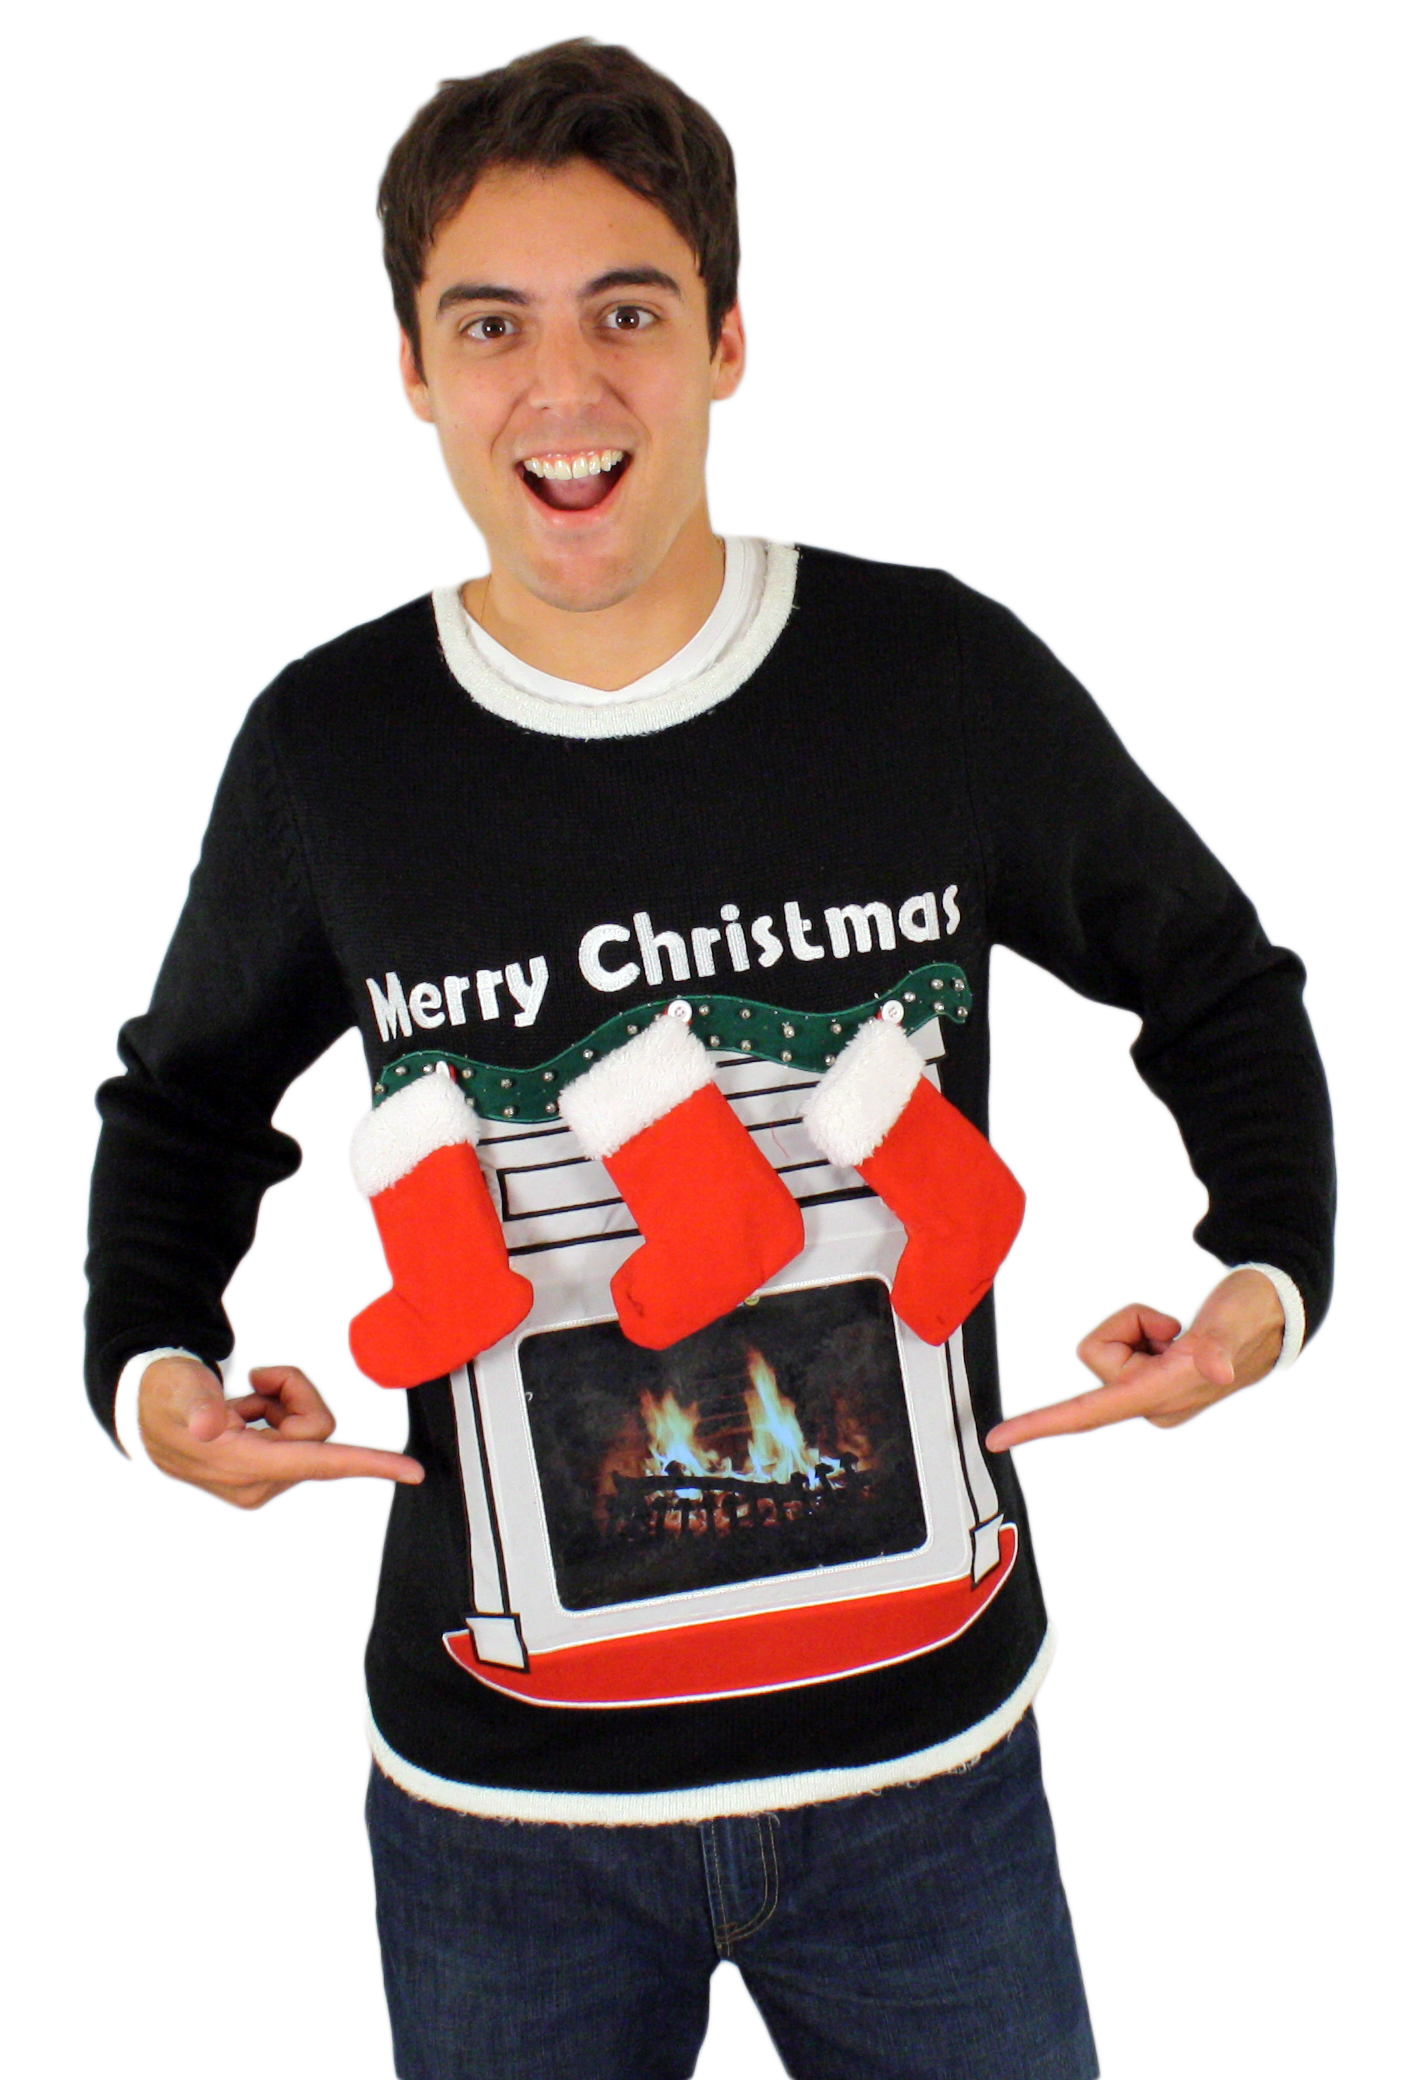 wine sweaters are herenew have your wine bottle match your christmas sweater - Unique Christmas Sweaters